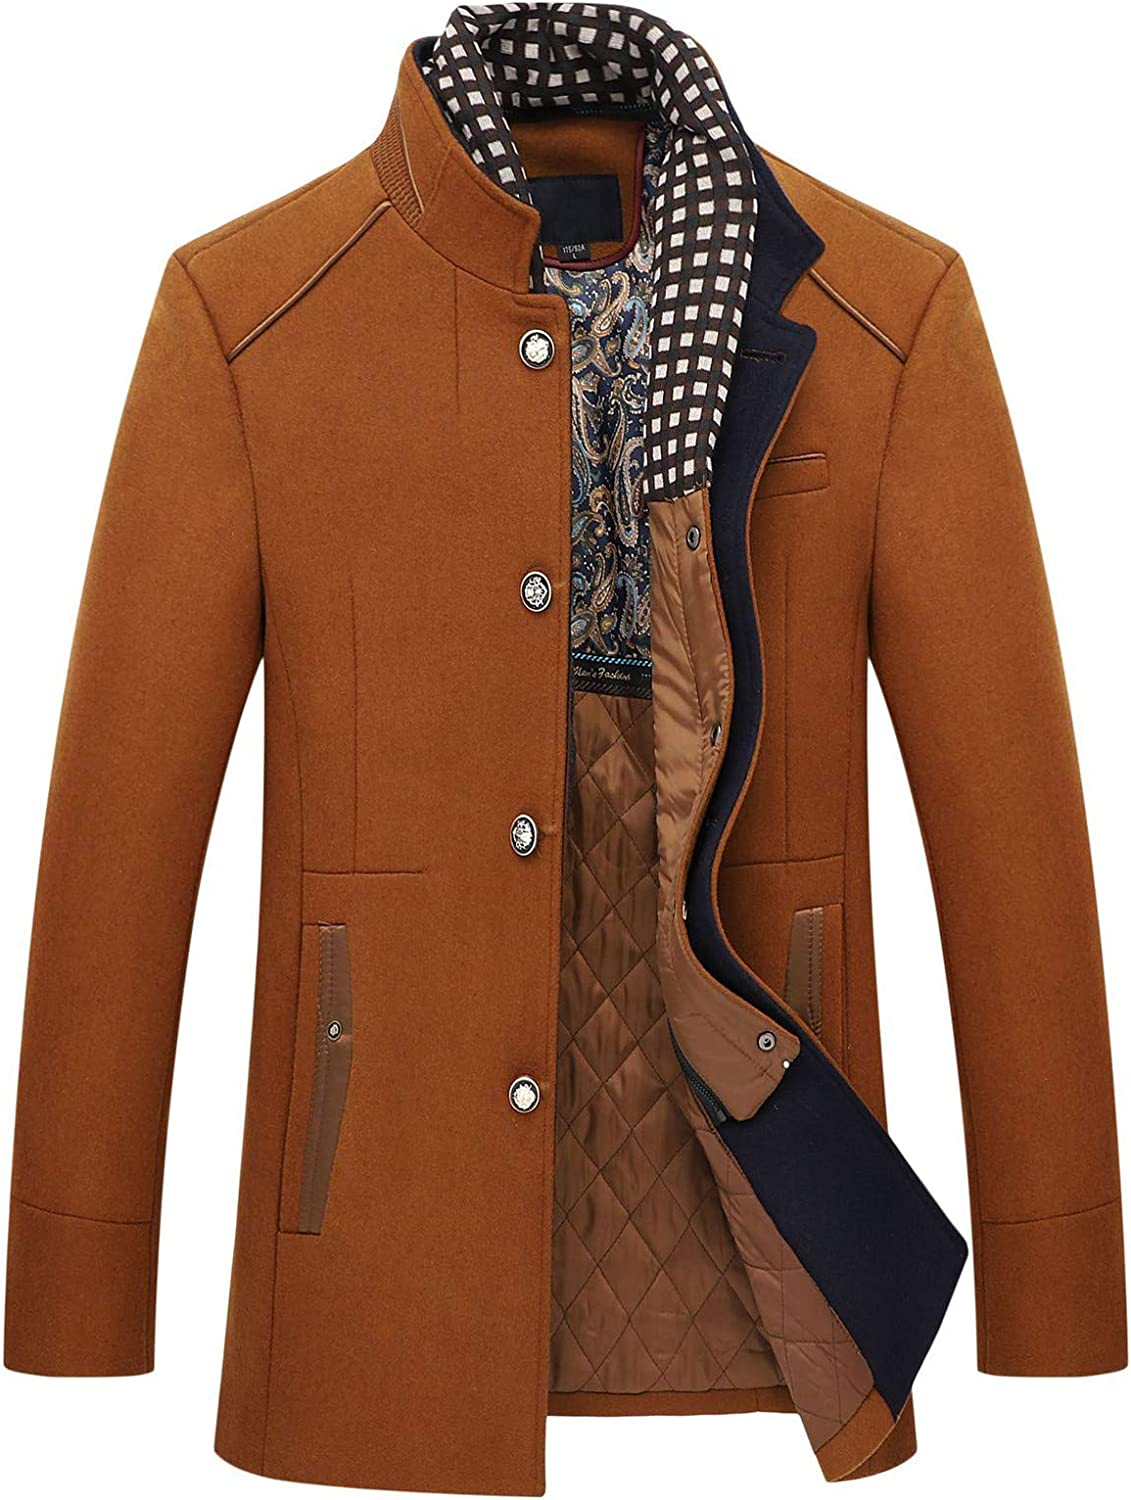 Men's Jackets With Pocket,Long Sleeve Warm Tweed Button Jacket V619